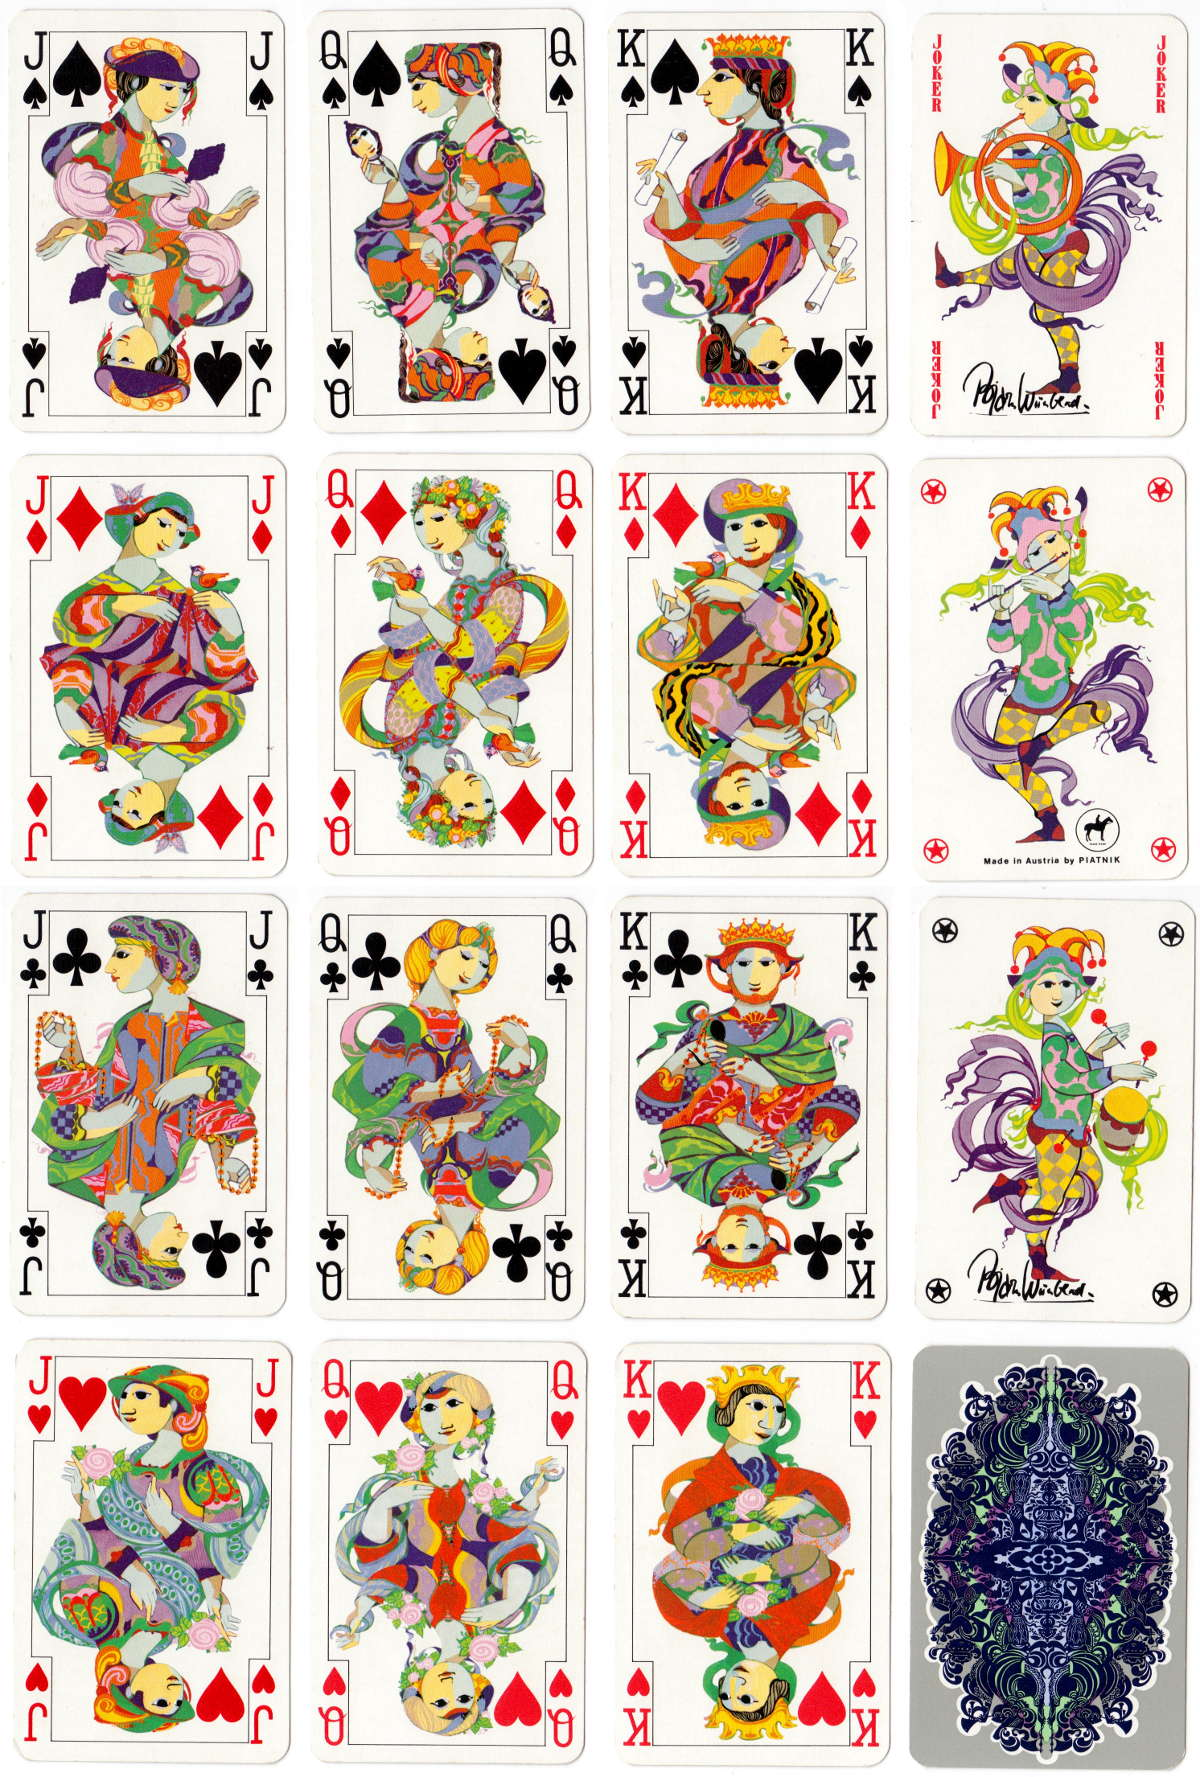 Bjørn Wiinblad playing cards published by Piatnik, late 1970s